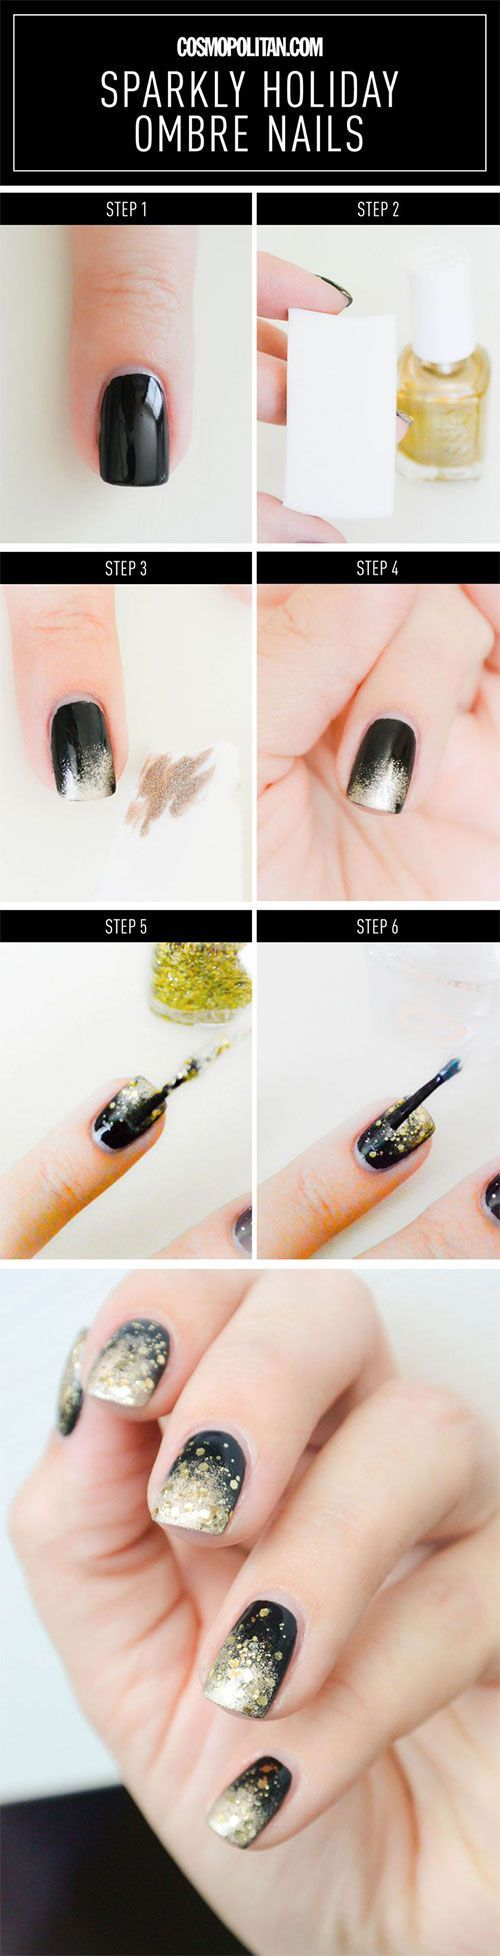 36 best Nail Art for the shop images on Pinterest | Nail scissors ...